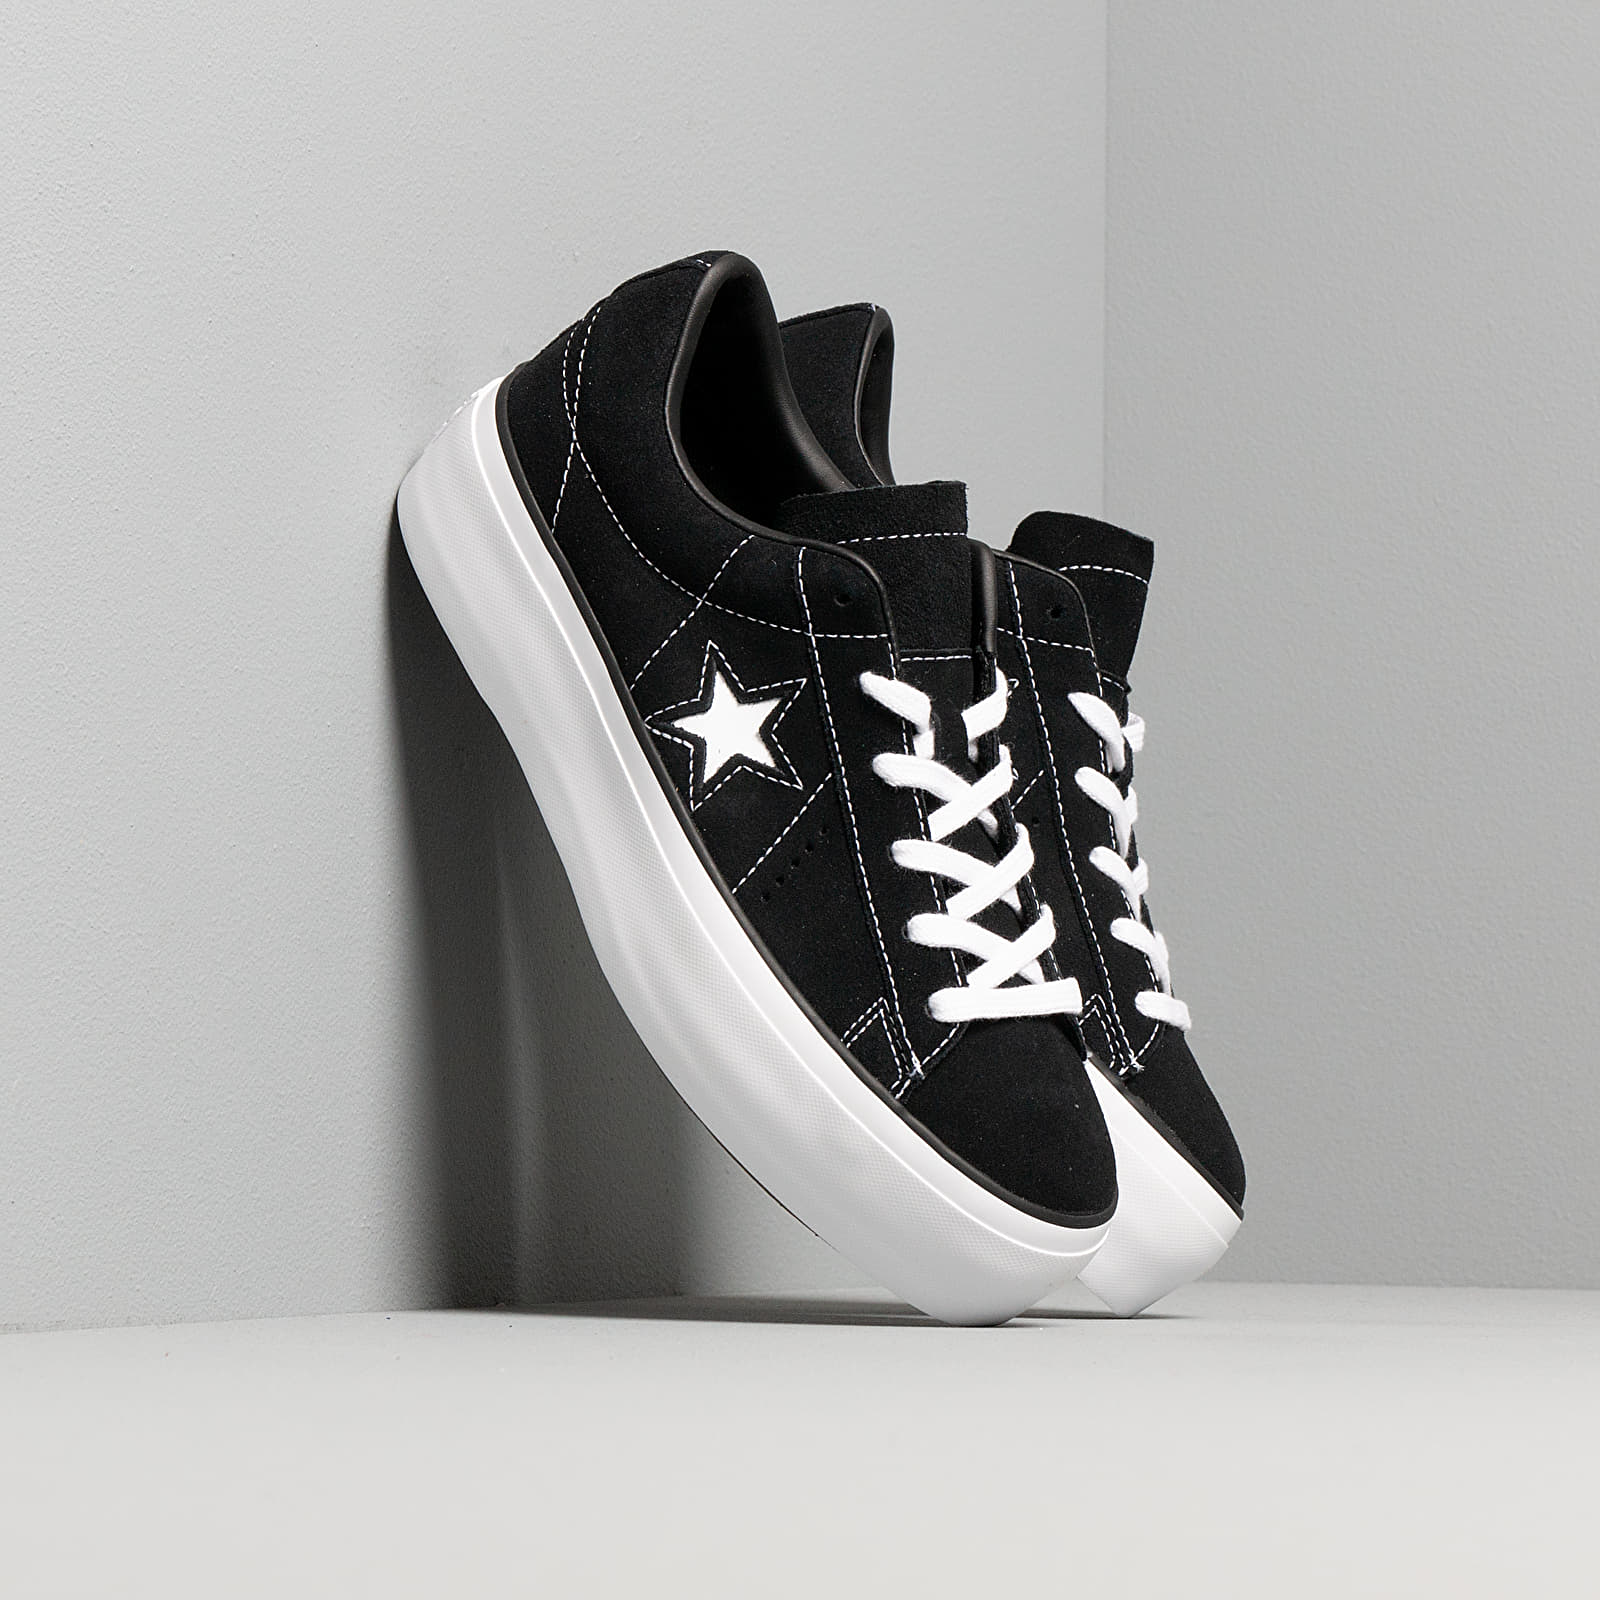 Frauen Converse One Star Platform Black/ Black/ White